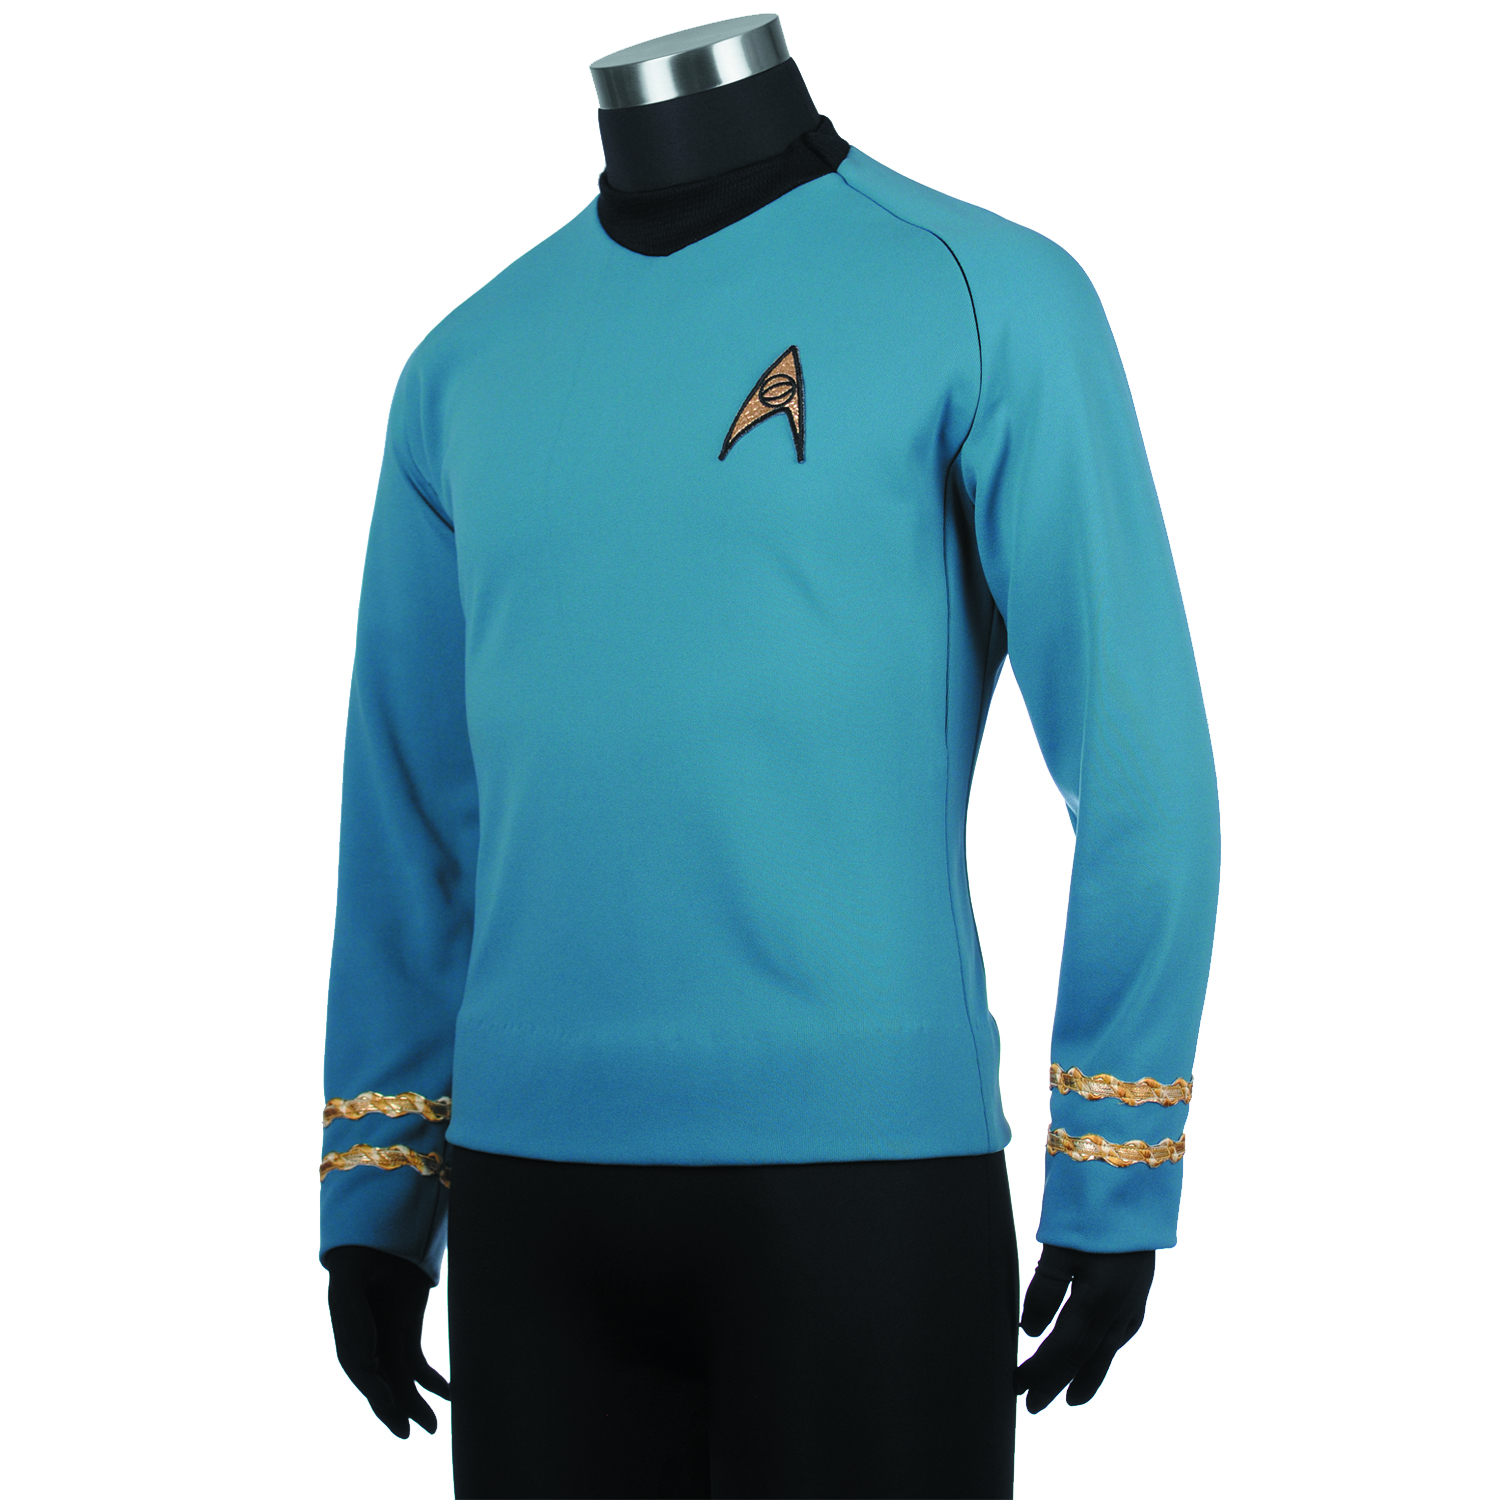 ST TOS SPOCK REPLICA TUNIC LG